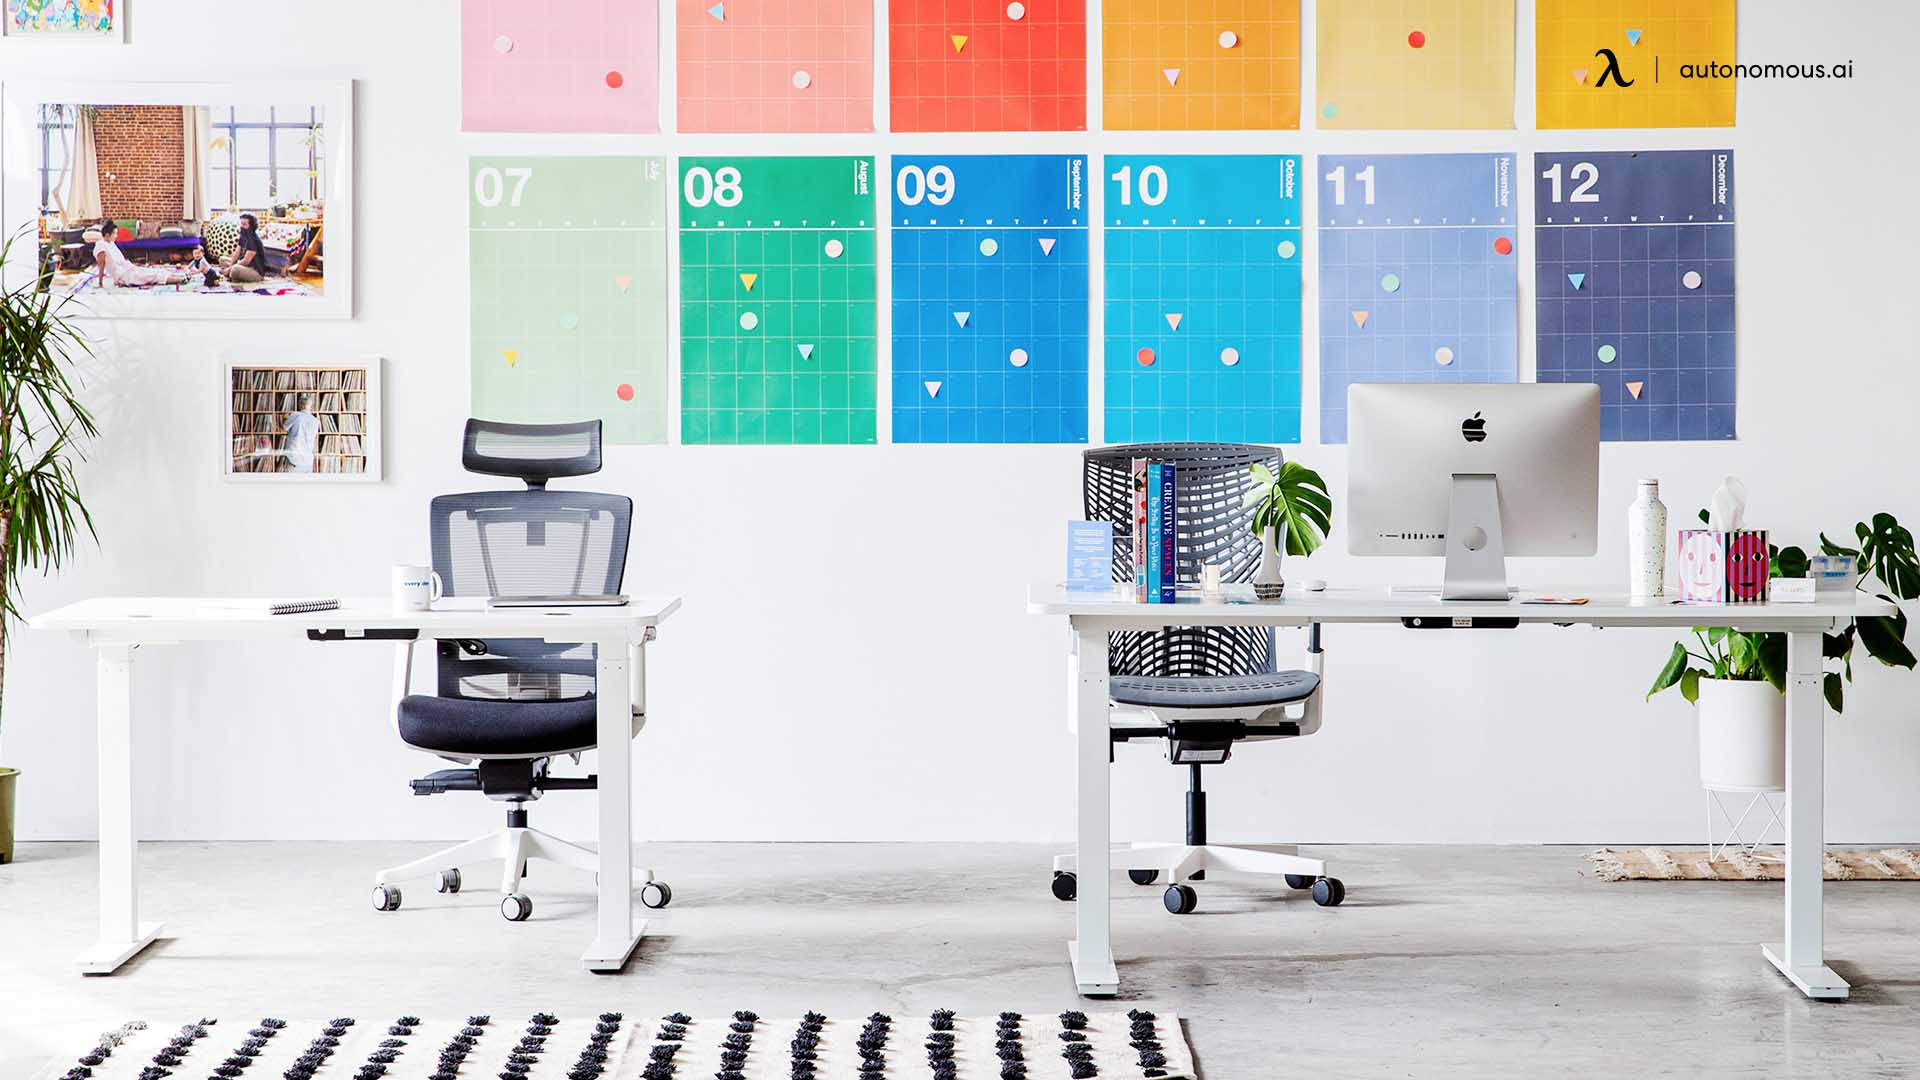 What Else Can You Do to Optimize Your Working Spaces?